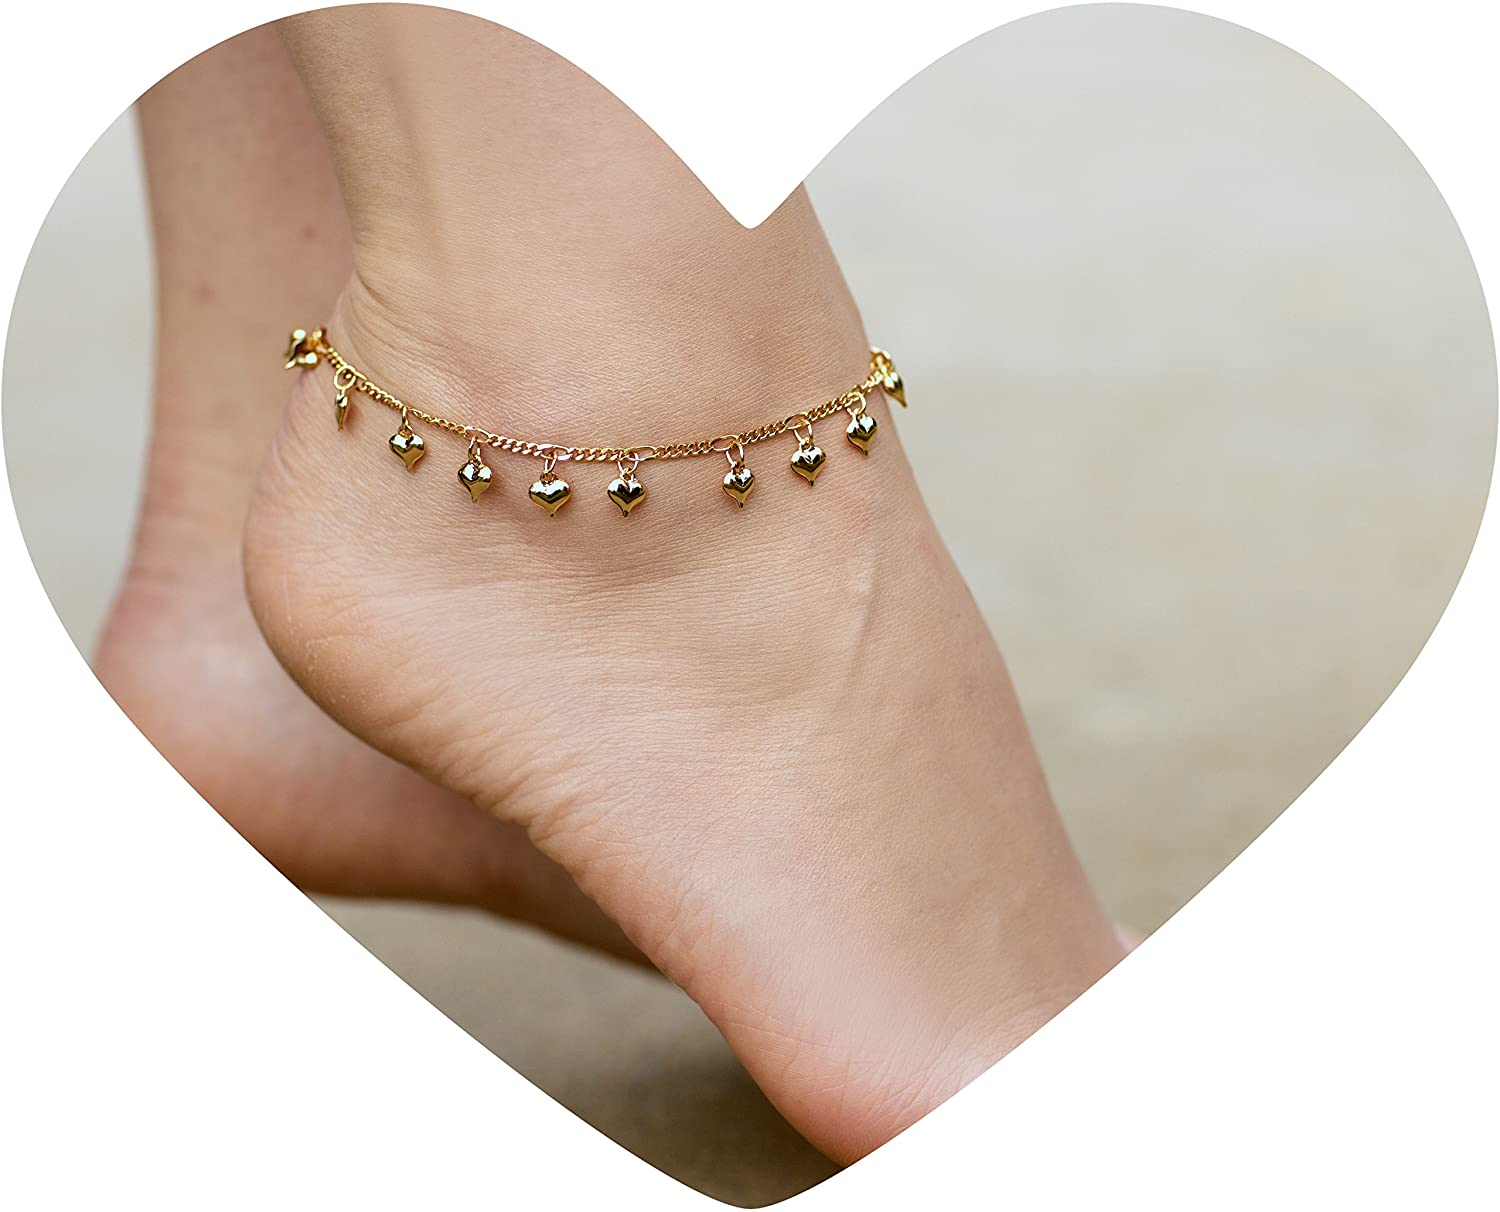 Free Lifetime Replacement Guarantee 9 10 11 Cute Foot Jewelry for Beach Wedding or Party Dangling Charm Hearts 24k Plated Gold Anklet Lifetime Jewelry Ankle Bracelets for Women /& Teen Girls